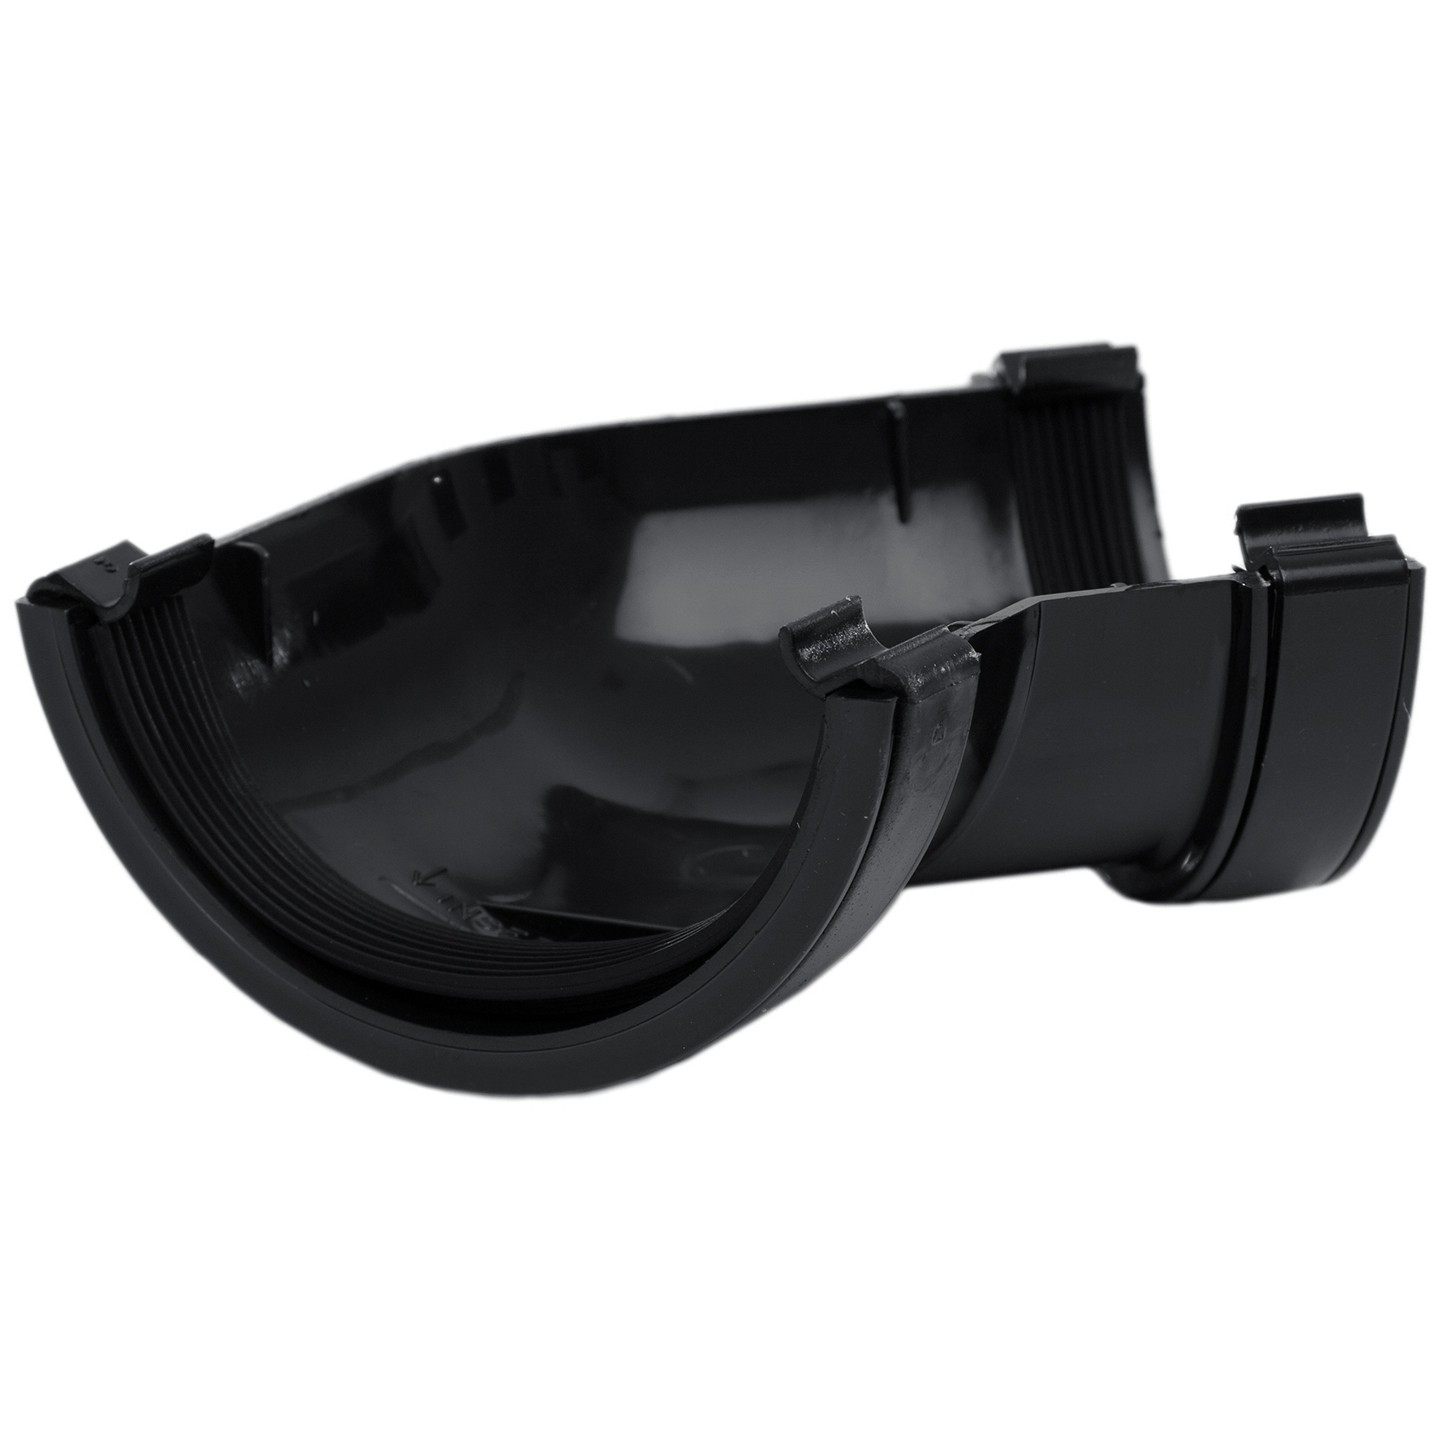 Polypipe 112mm Half Round Gutter 135 Degree Angle - Black